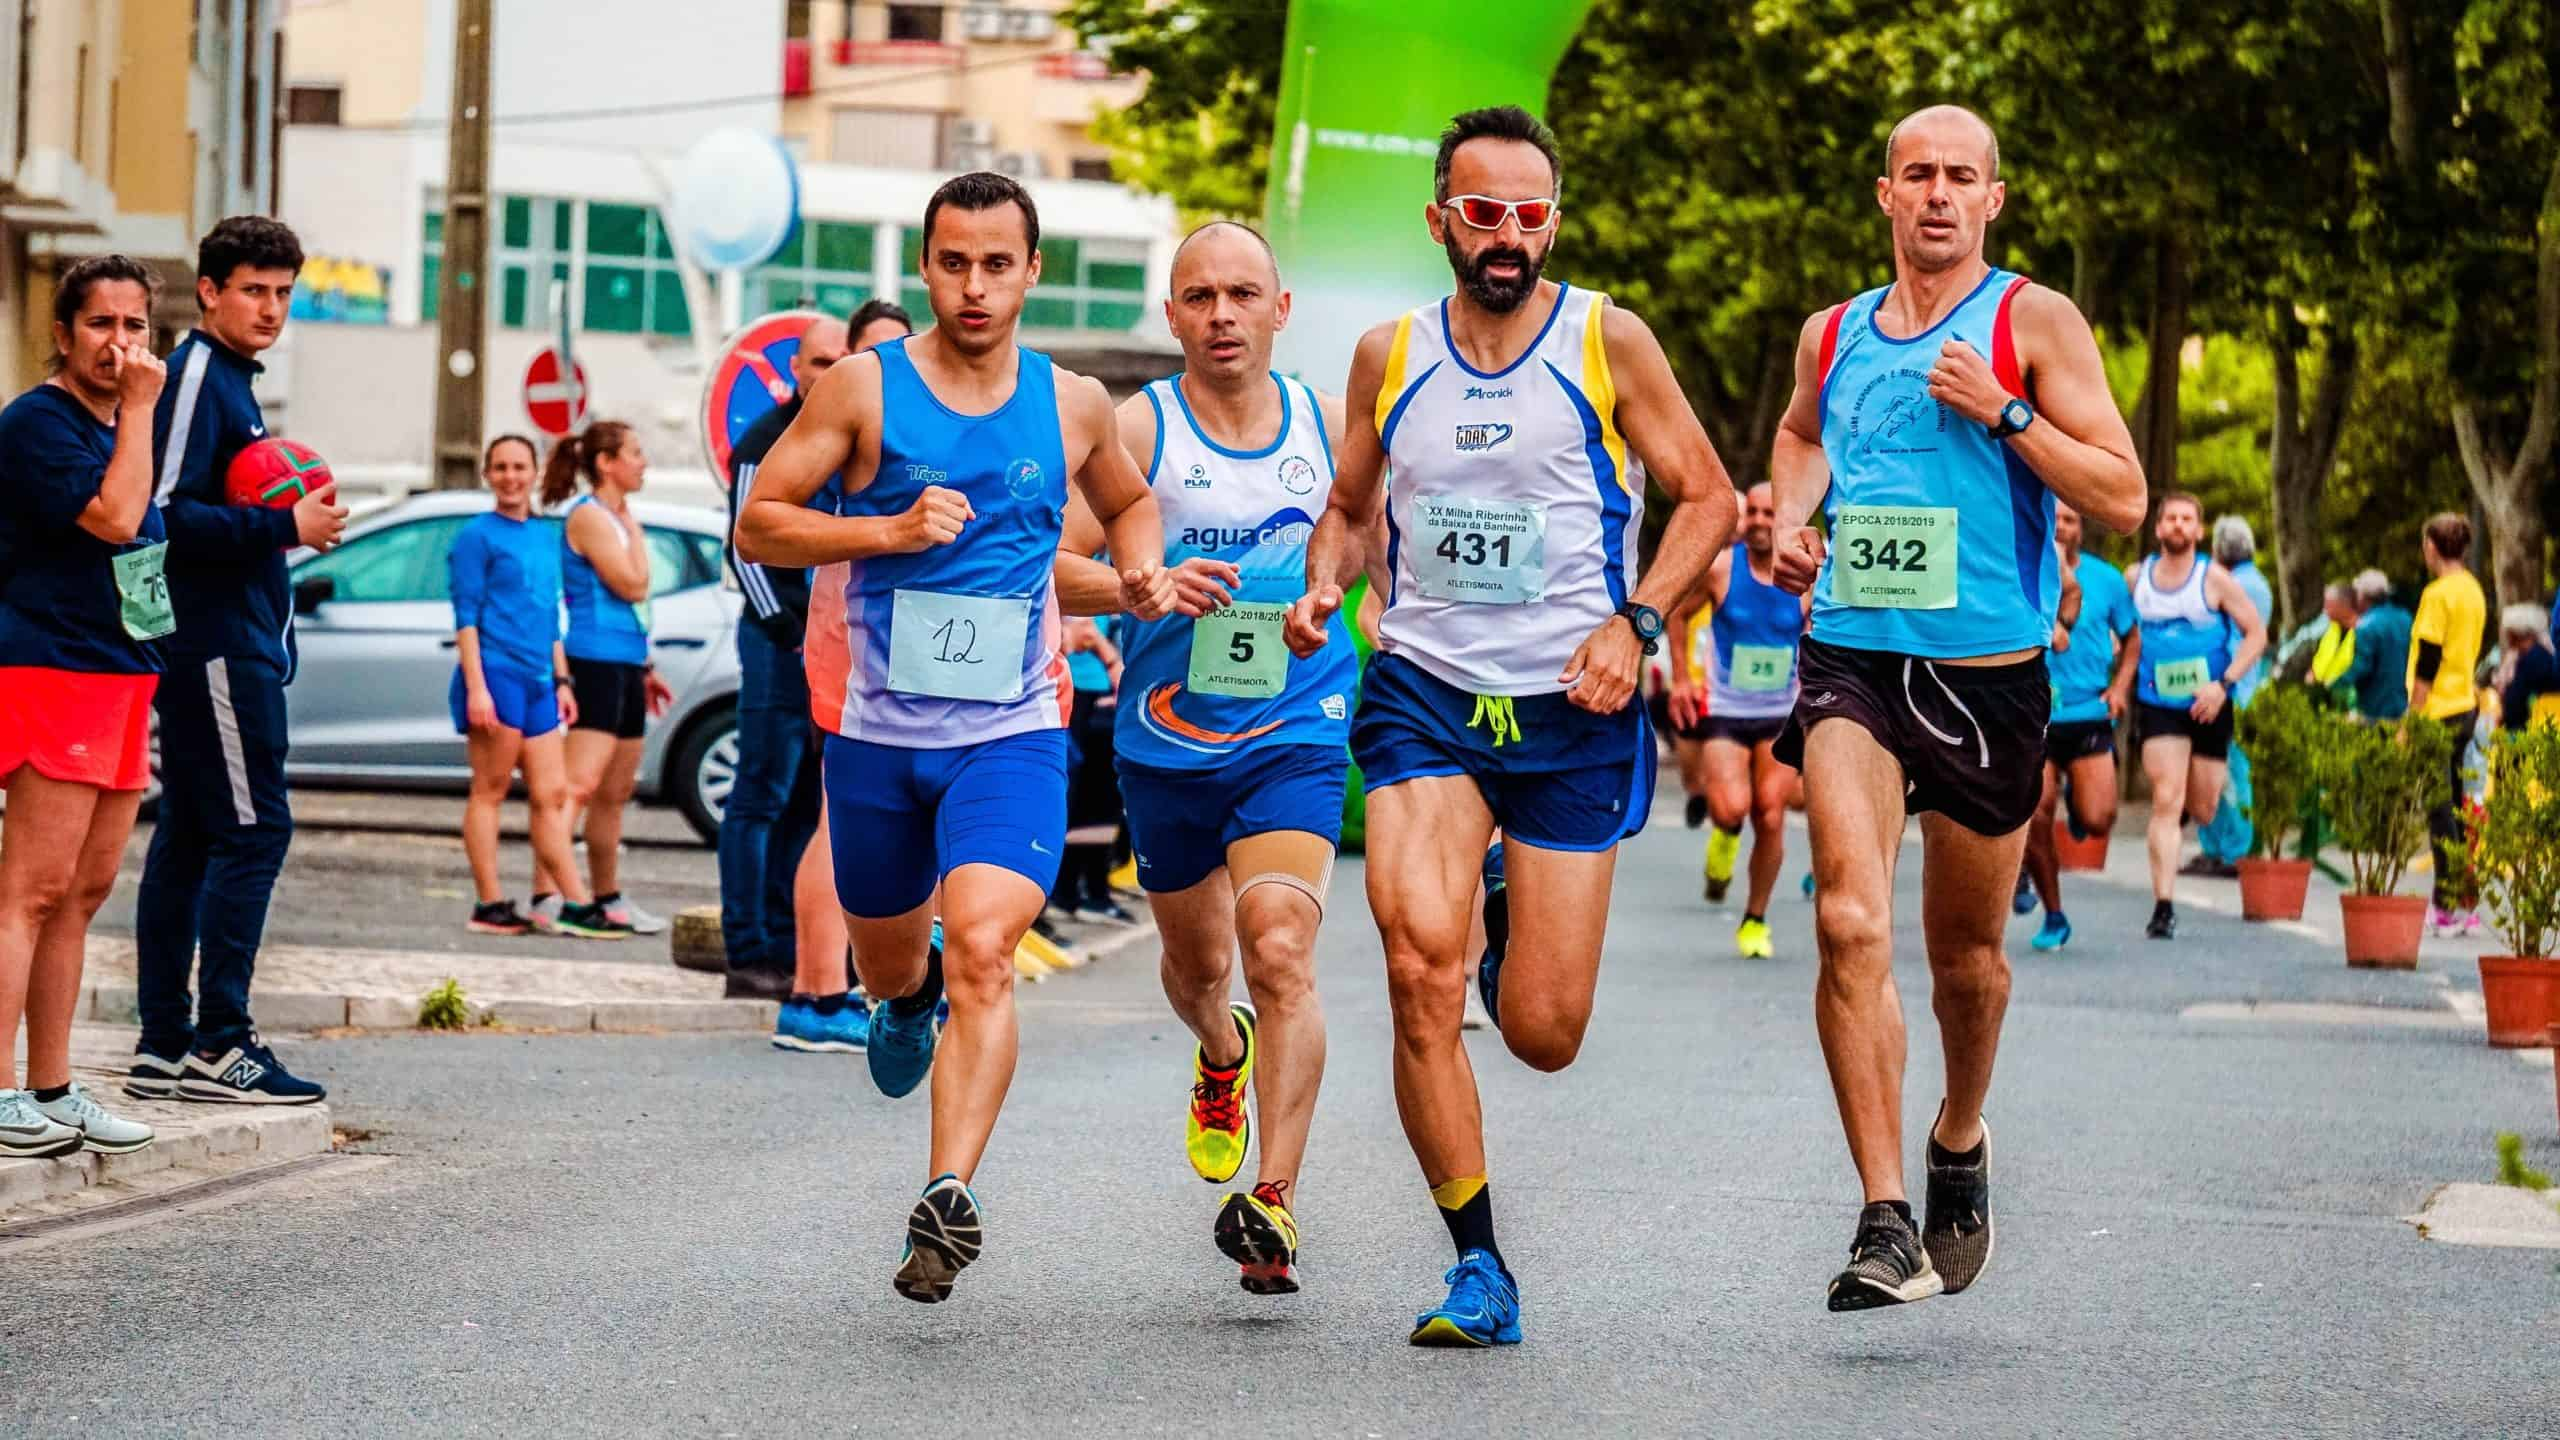 How To Get Ready For Marathon: Tips